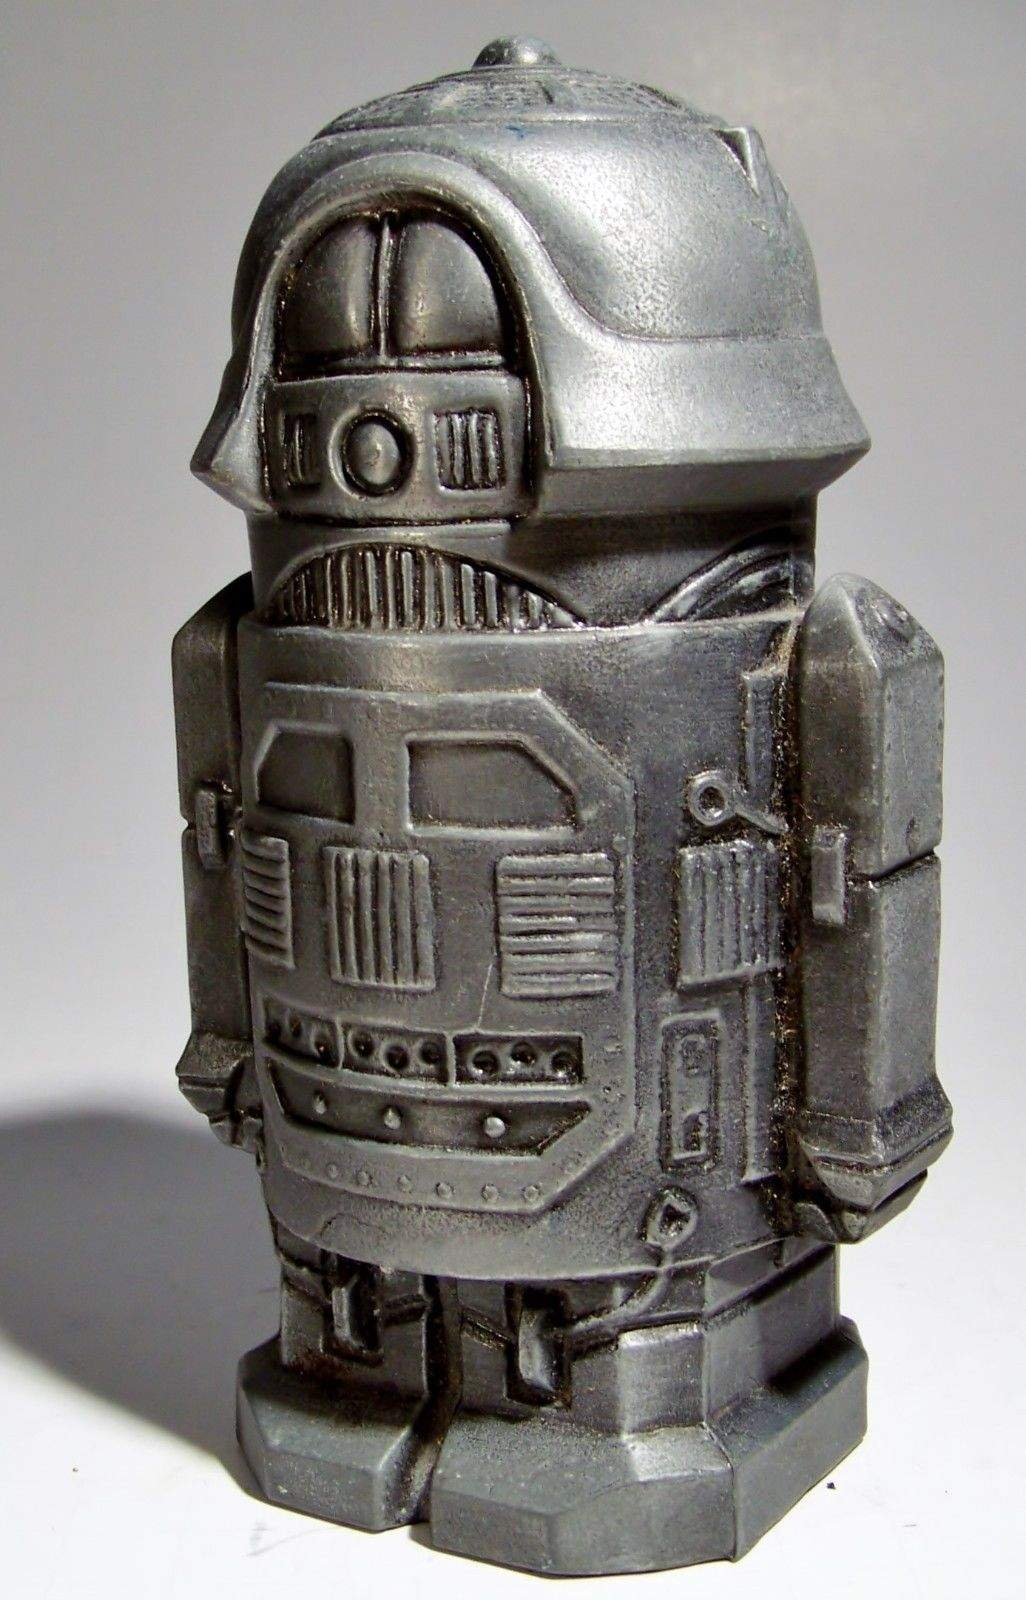 Banthrico Robot - The Old Robots Web Site